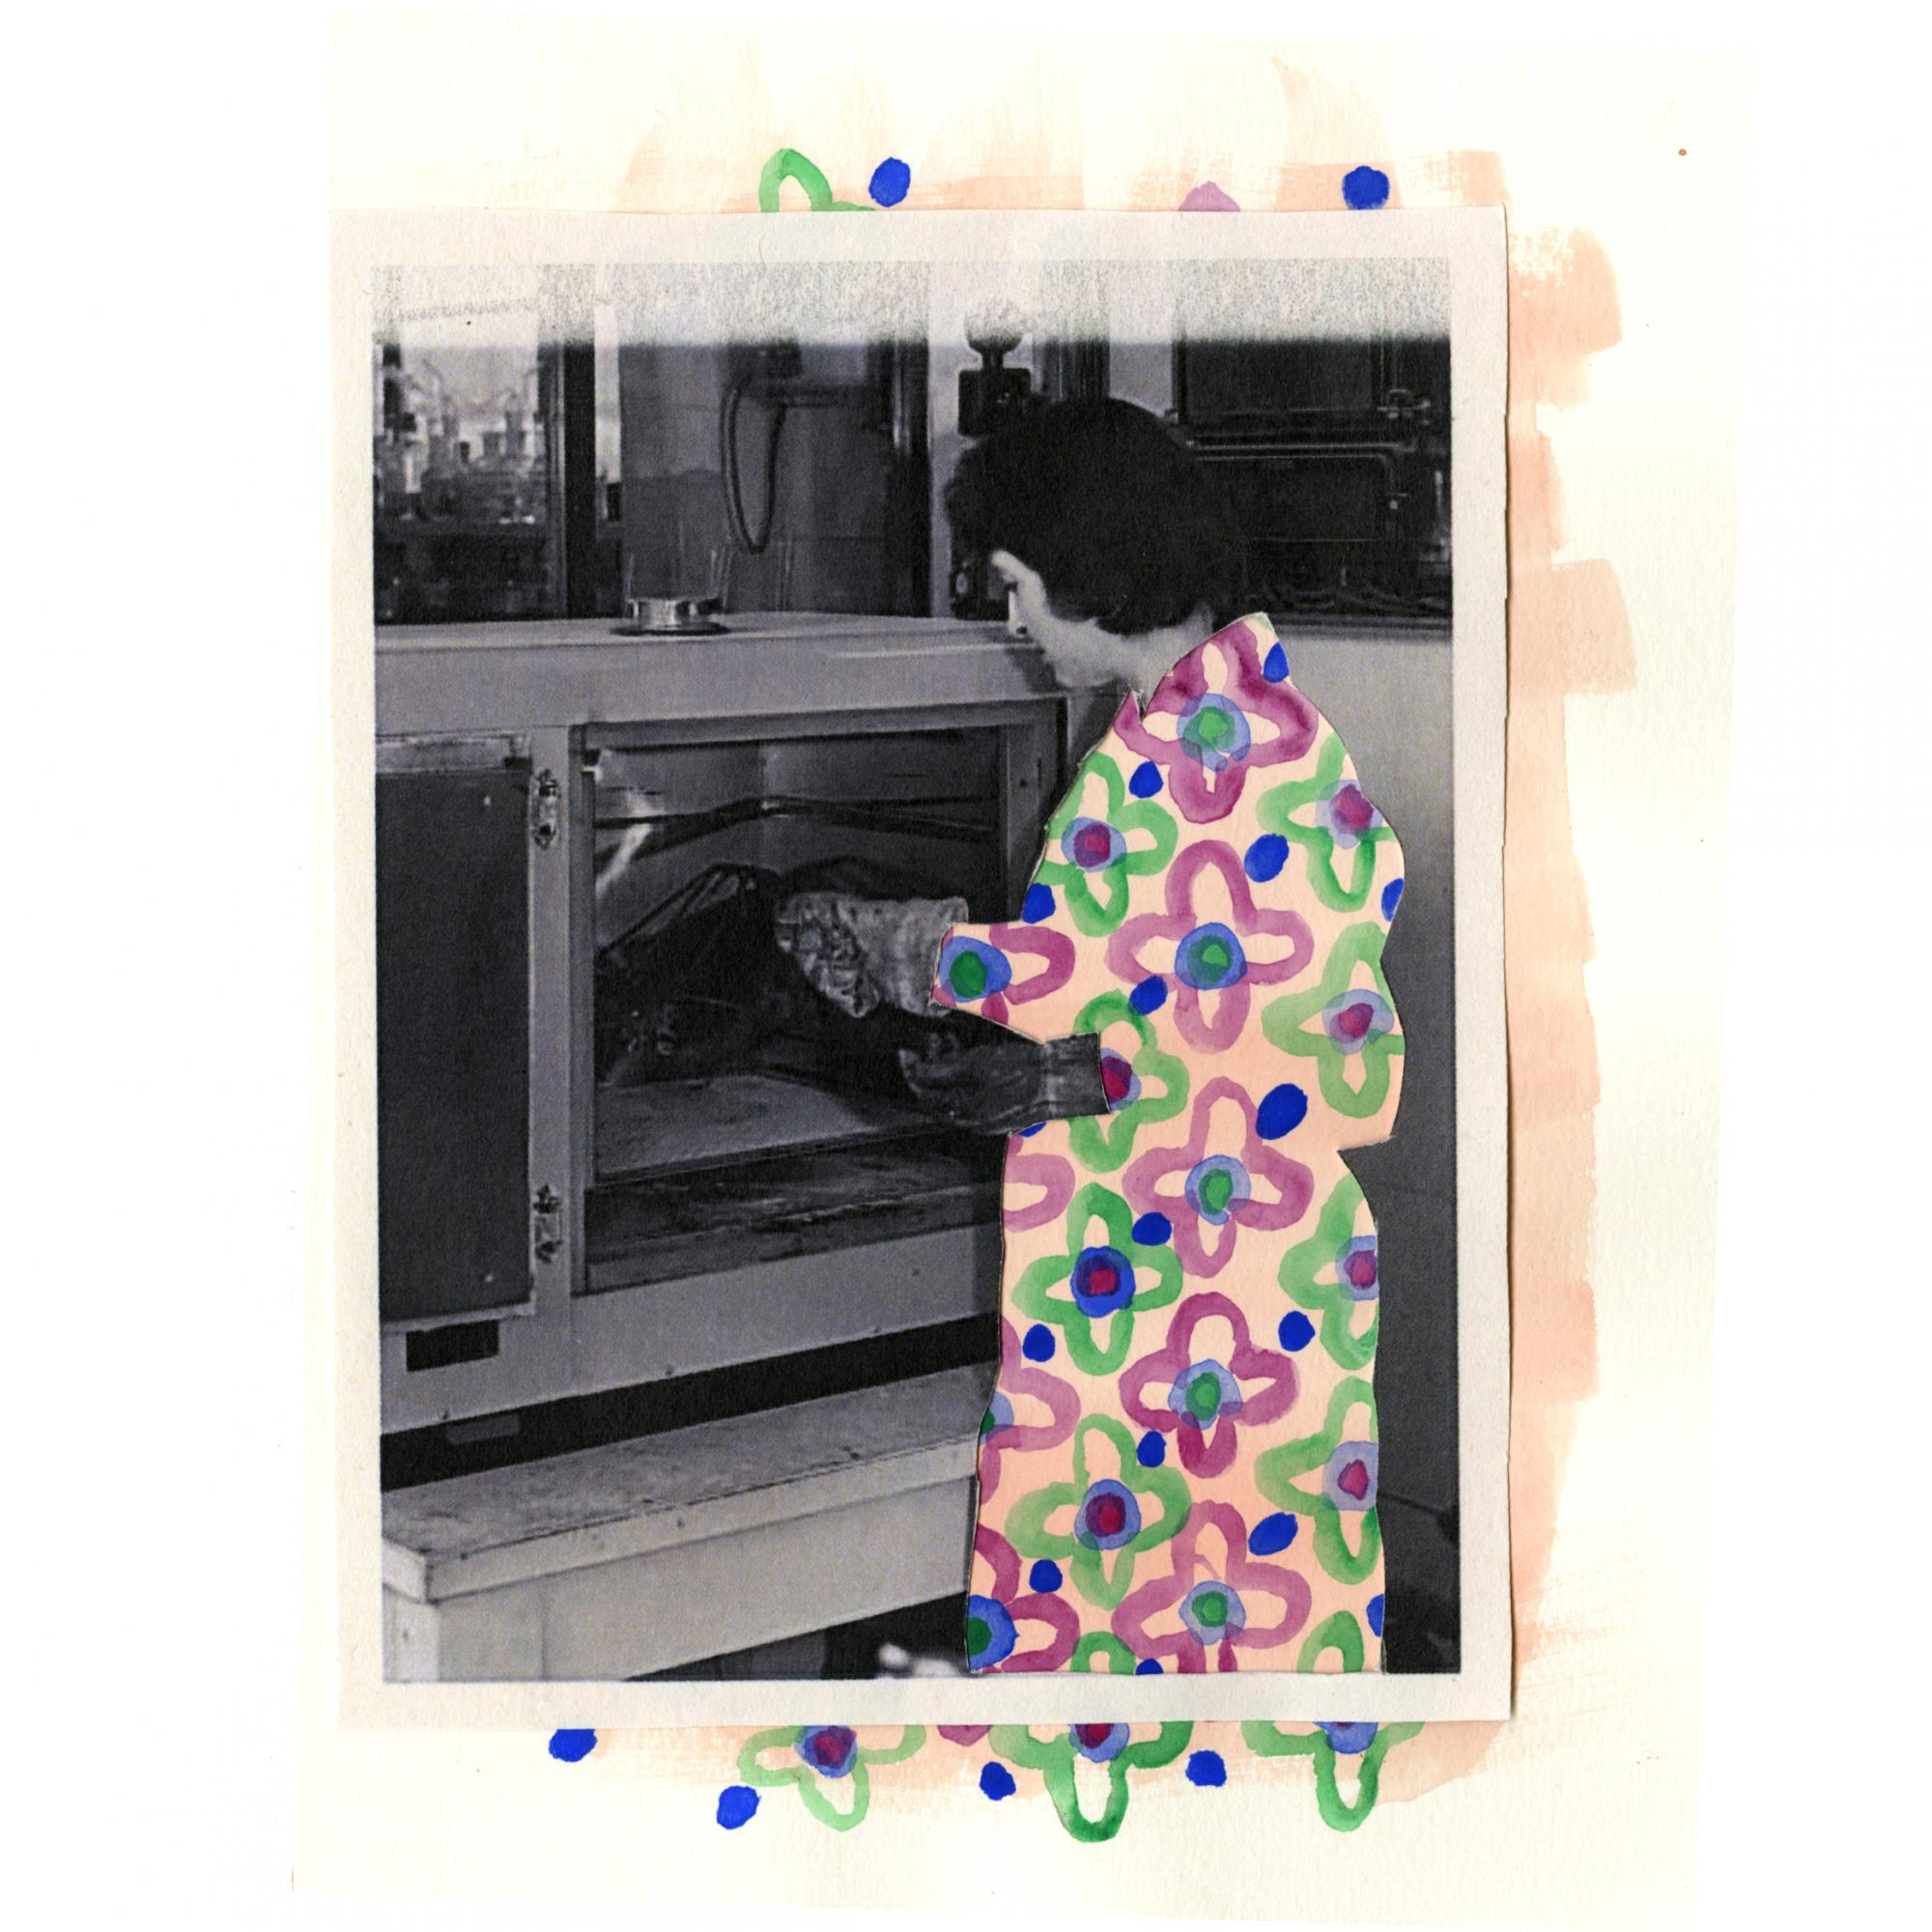 Photograph print depicting Dip coating polyethylene cut out with watercolour pattern behind.